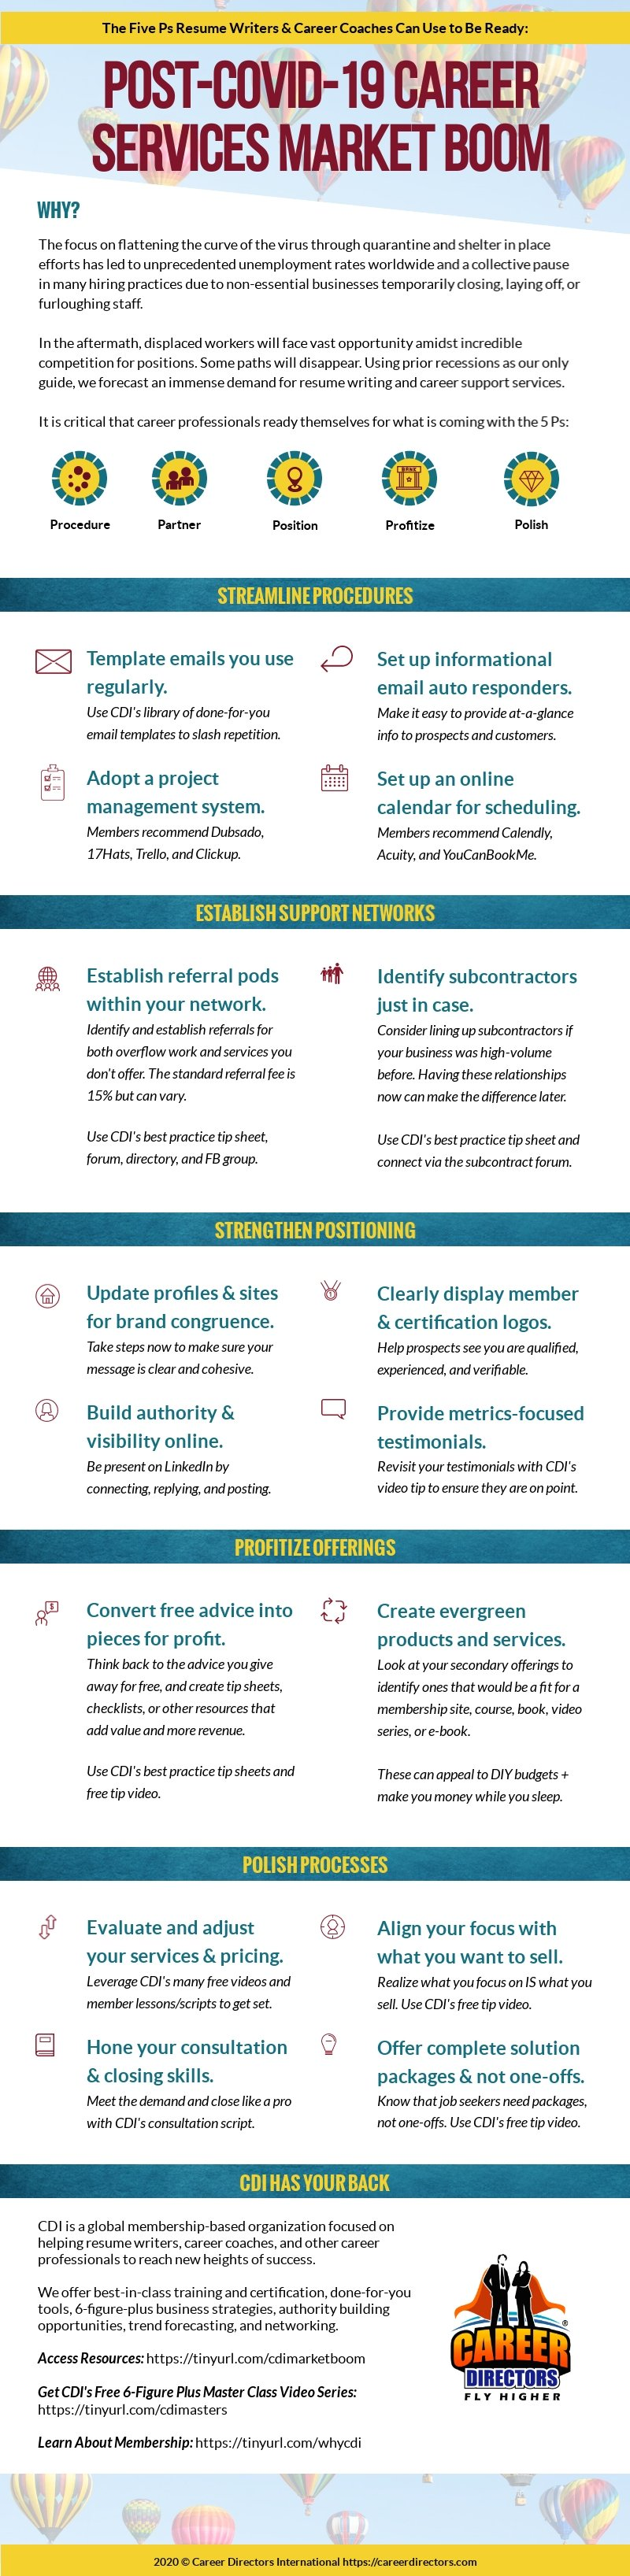 Infographic of the 5 P's for Resume Writers & Career Coaches to Navigate the Post-COVID-19 Career Services Boom Market